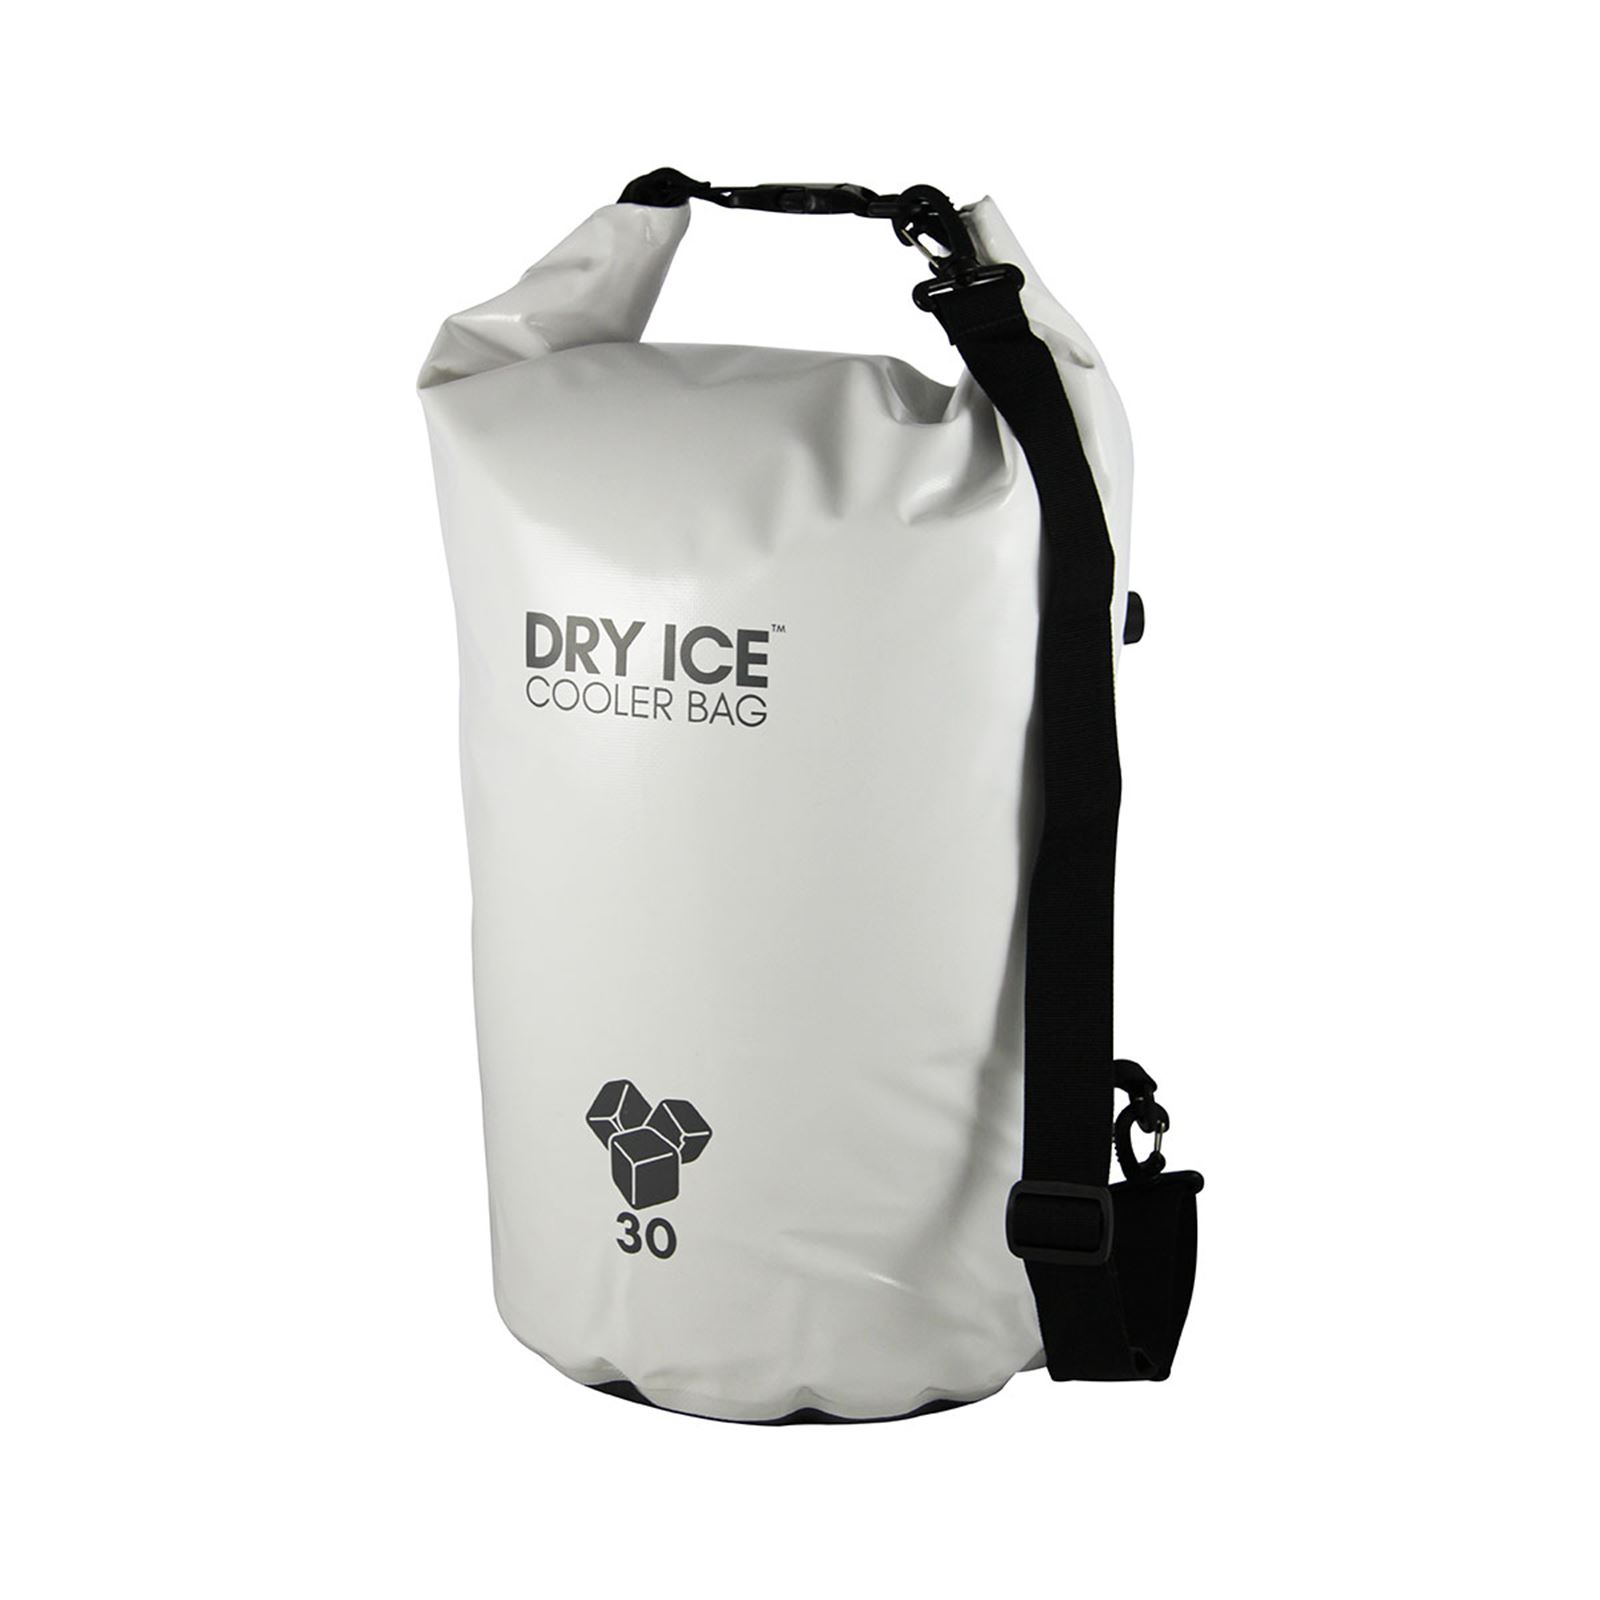 Dry Ice Cooler Bag 30 Lit - White